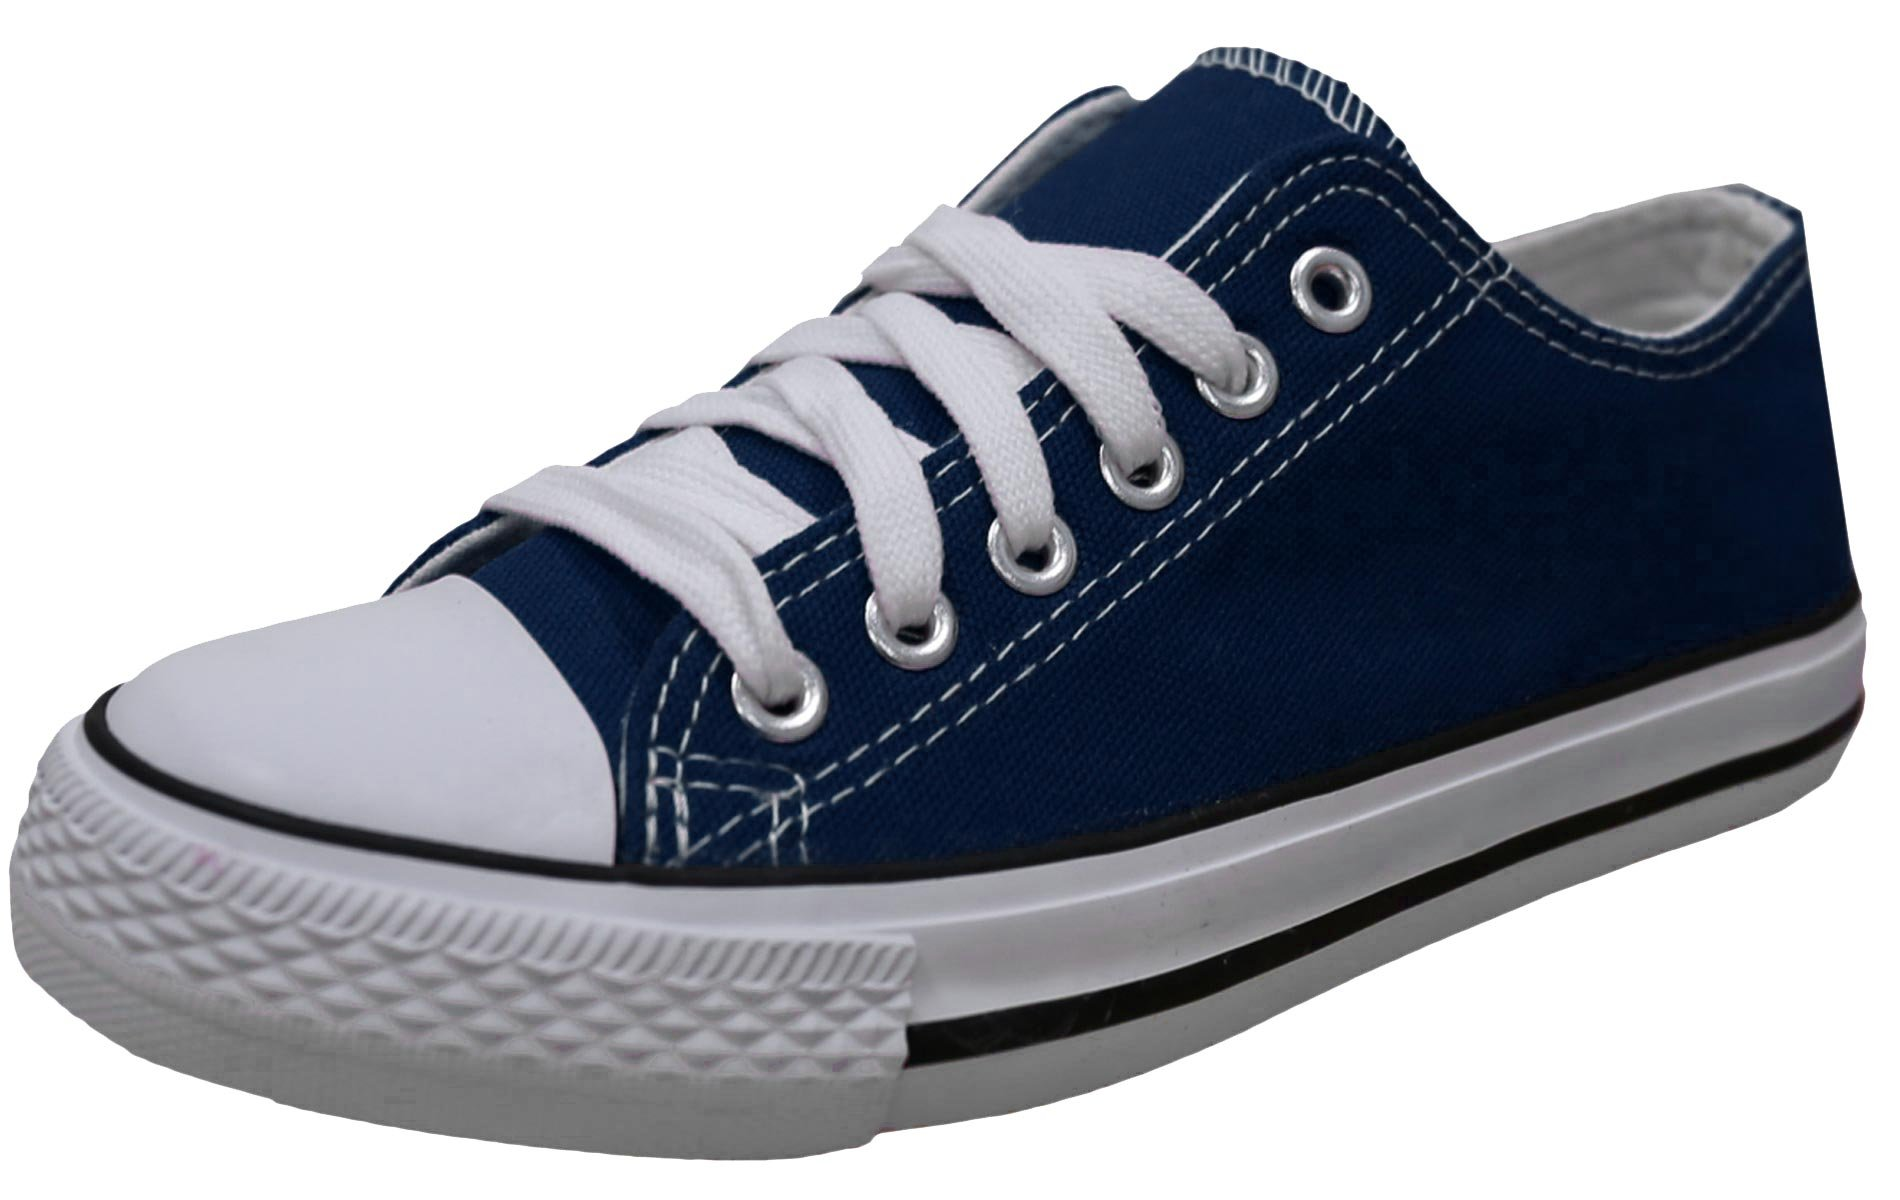 S-3 Women's Low Top Classic Canvas Fashion Sneaker (7 B(M) US, Navy)